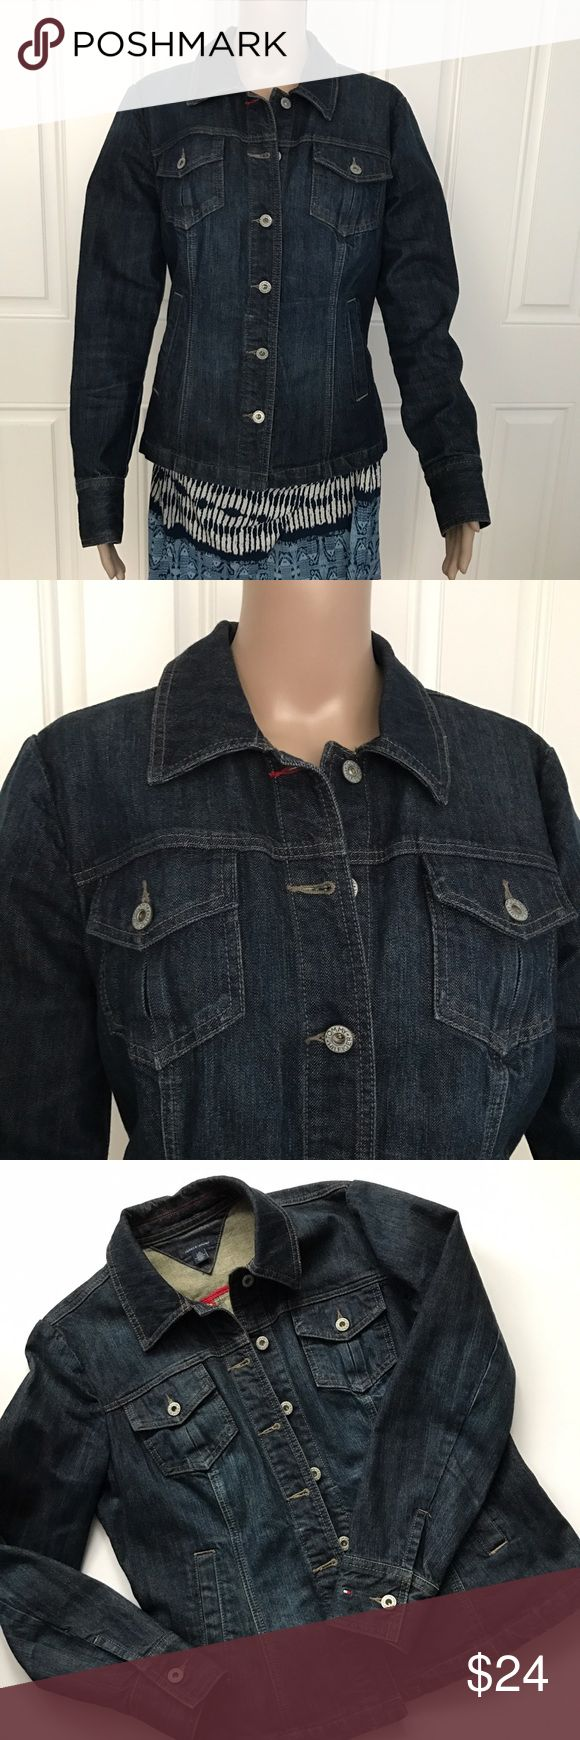 """Tommy Hilfiger Stretch Dark Blue Denim Jean Jacket Tommy Hilfiger woman Stretch Dark Blue Denim Jean Jacket, Slim Fit, Size L. 99% cotton and 1% elastane. Long sleeves, chest pockets, faux side pockets, button cuffs, tailored seams and stretchy dark wash denim conastruction. Approximate measurements (laying flat): bust (armpit to armpit) 20"""", shoulders 16.5"""", length 23"""", sleeve 25"""". Tommy Hilfiger Jackets & Coats Jean Jackets"""